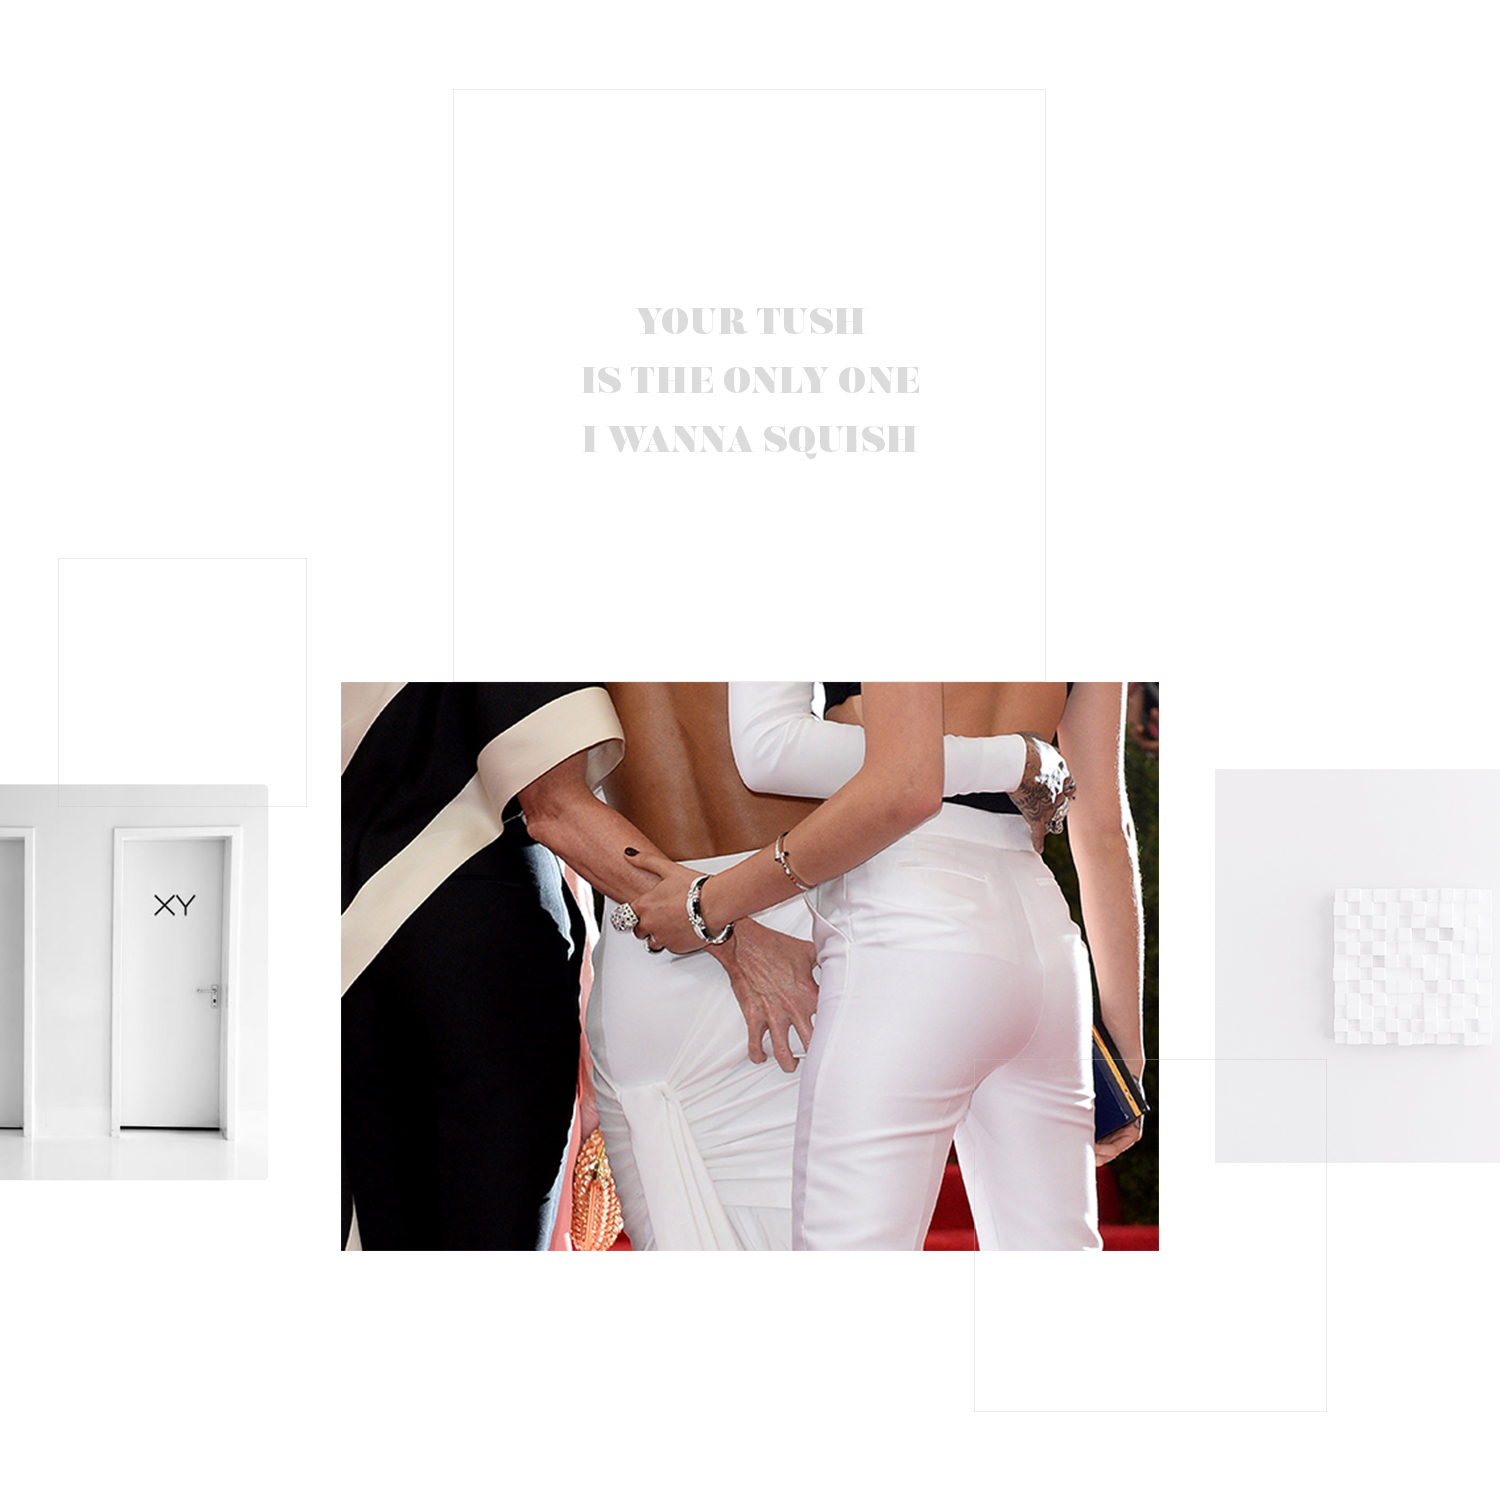 """Voilà chromosome decals on white minimalist doors + Grabbin tush on the red carpet + W Hotel's square wall hanging = LoweCo.'s """"Your tush is the only one I wanna squish"""" card"""